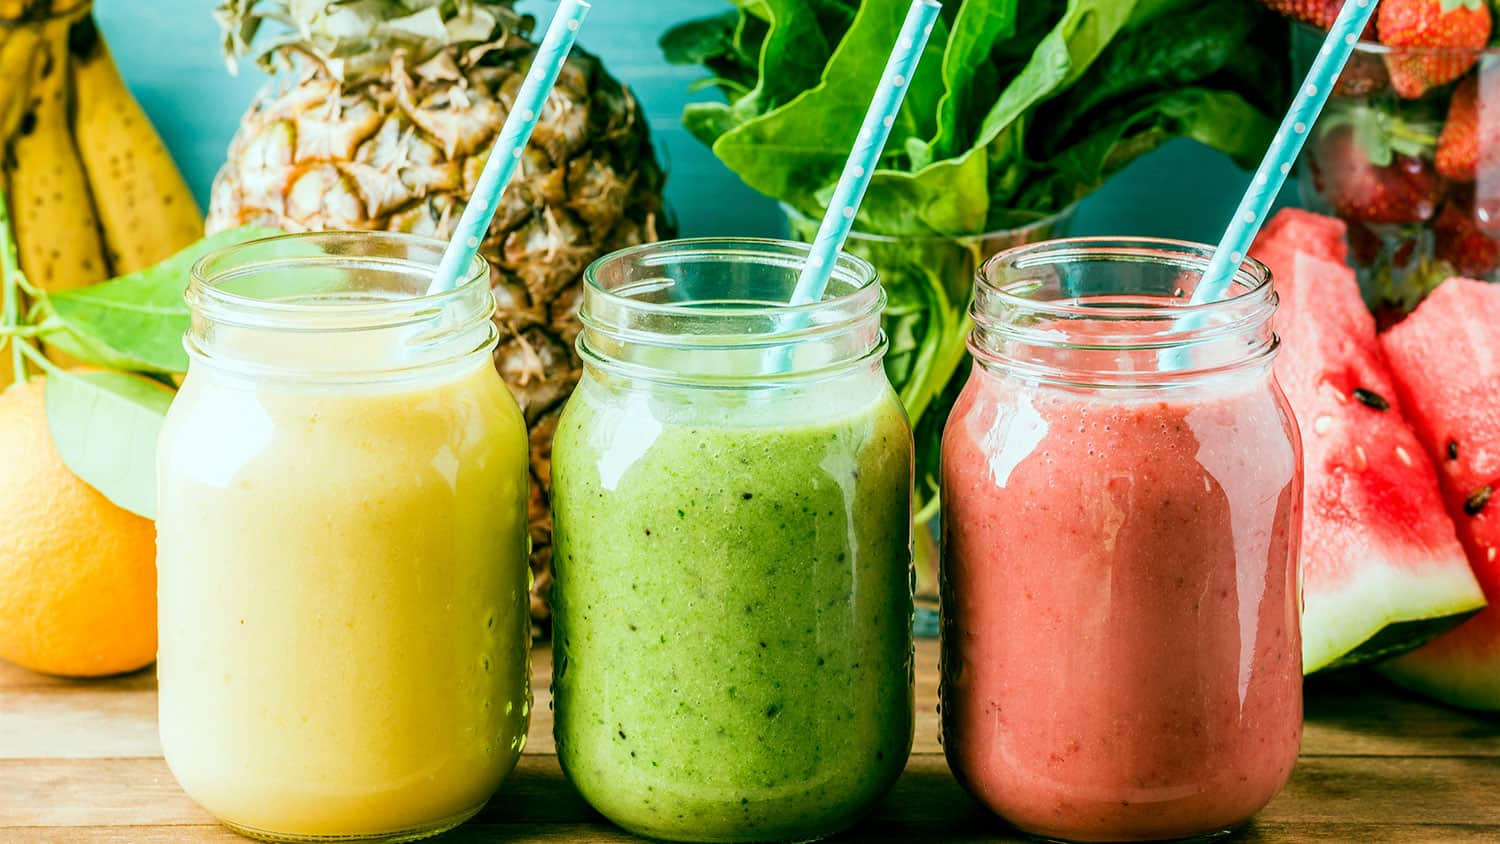 Looking For Proper Detox Your Body Plans?